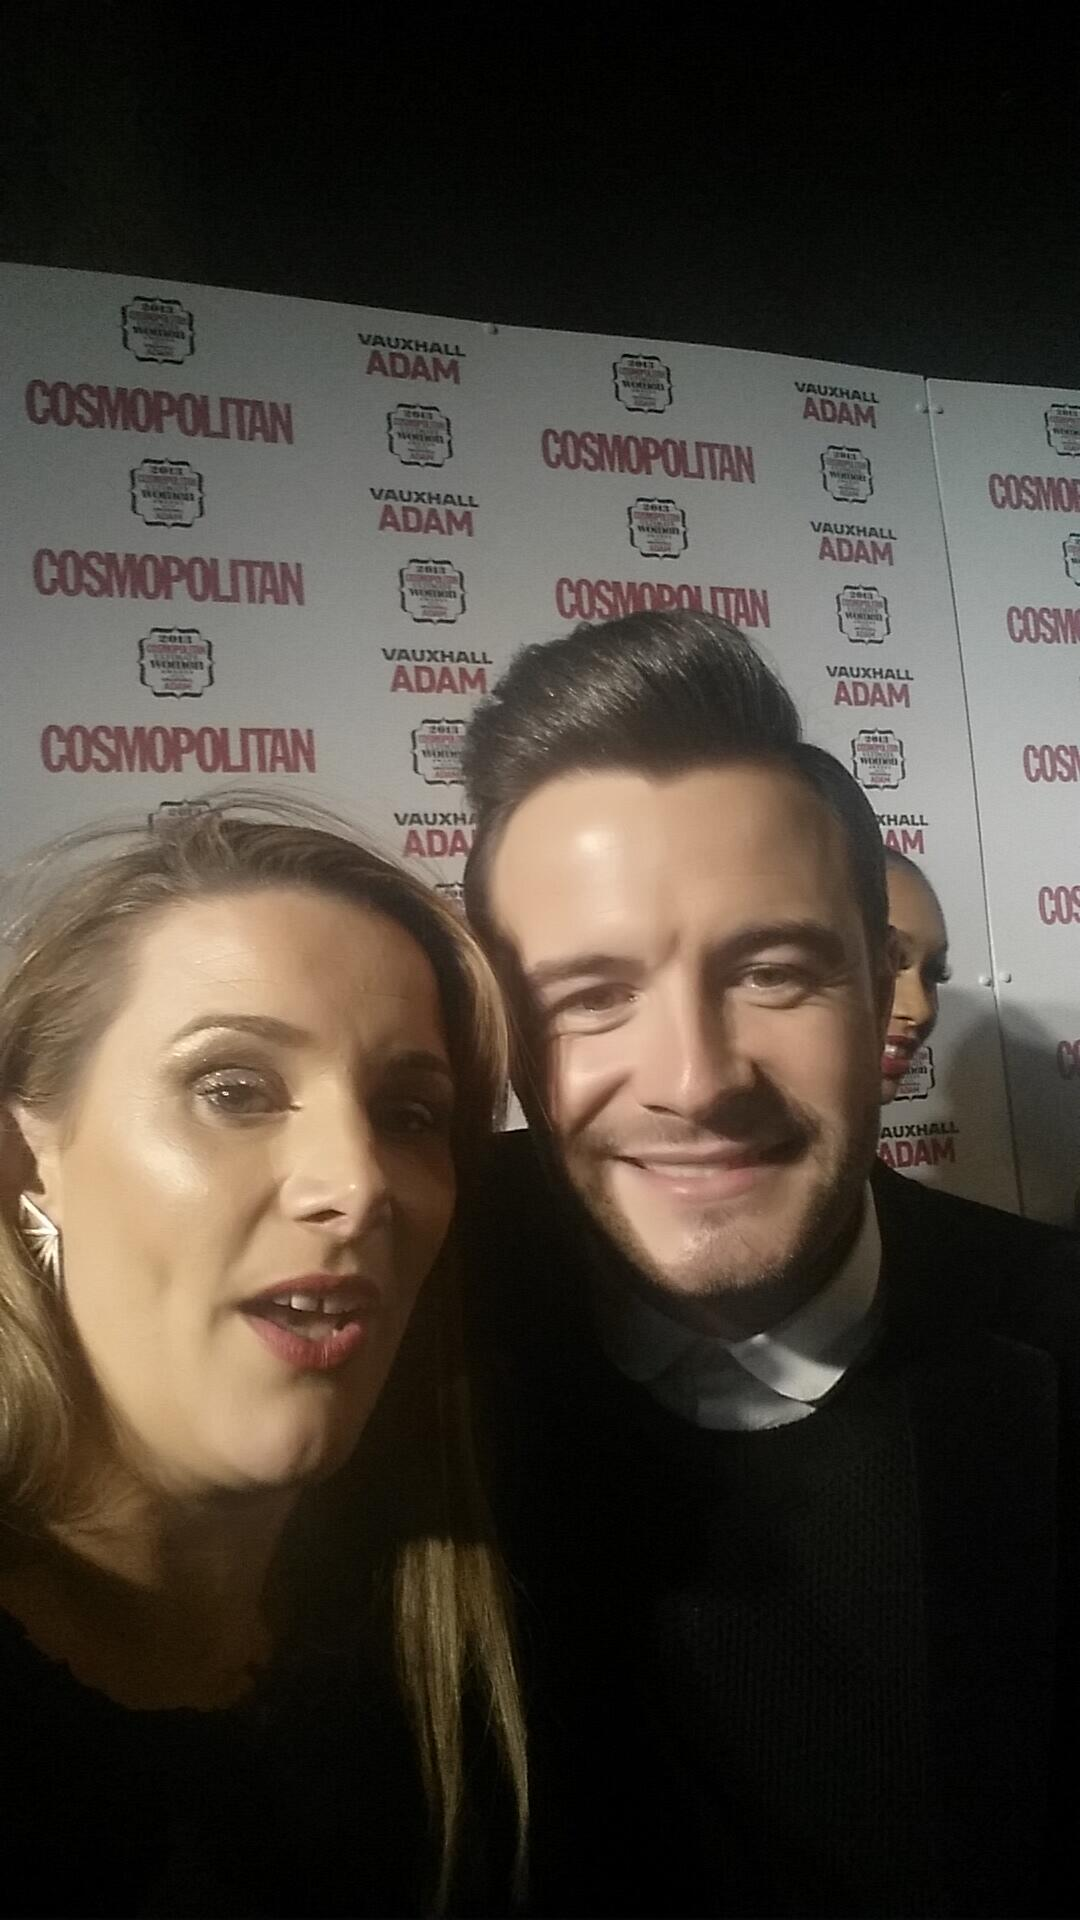 Me and Shane filan x http://t.co/JDq6rHx1wx